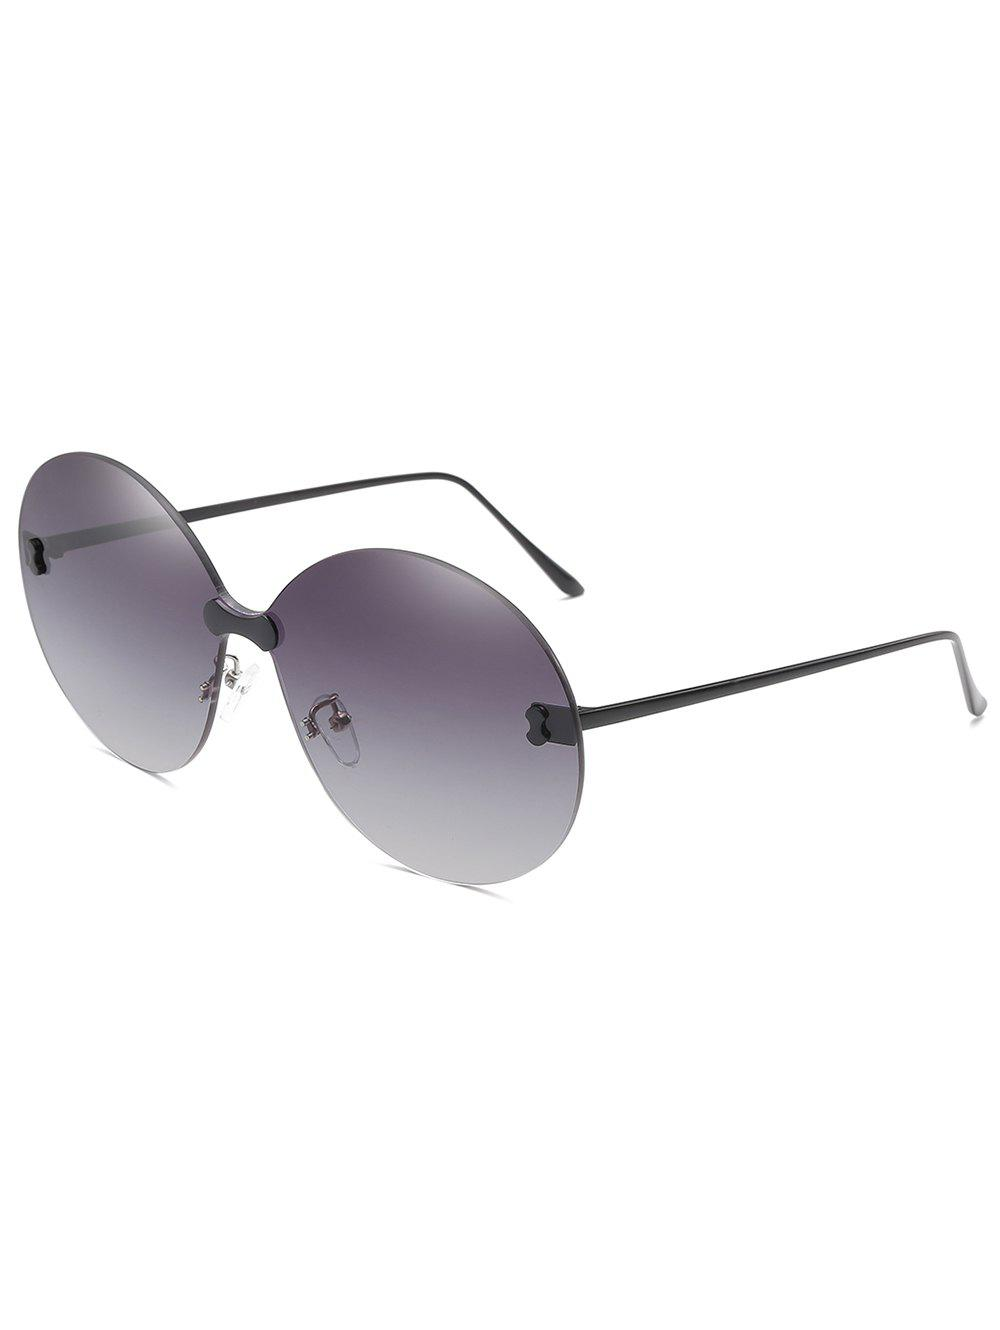 Anti Fatigue Rimless Travel Driving Sunglasses - JET GRAY